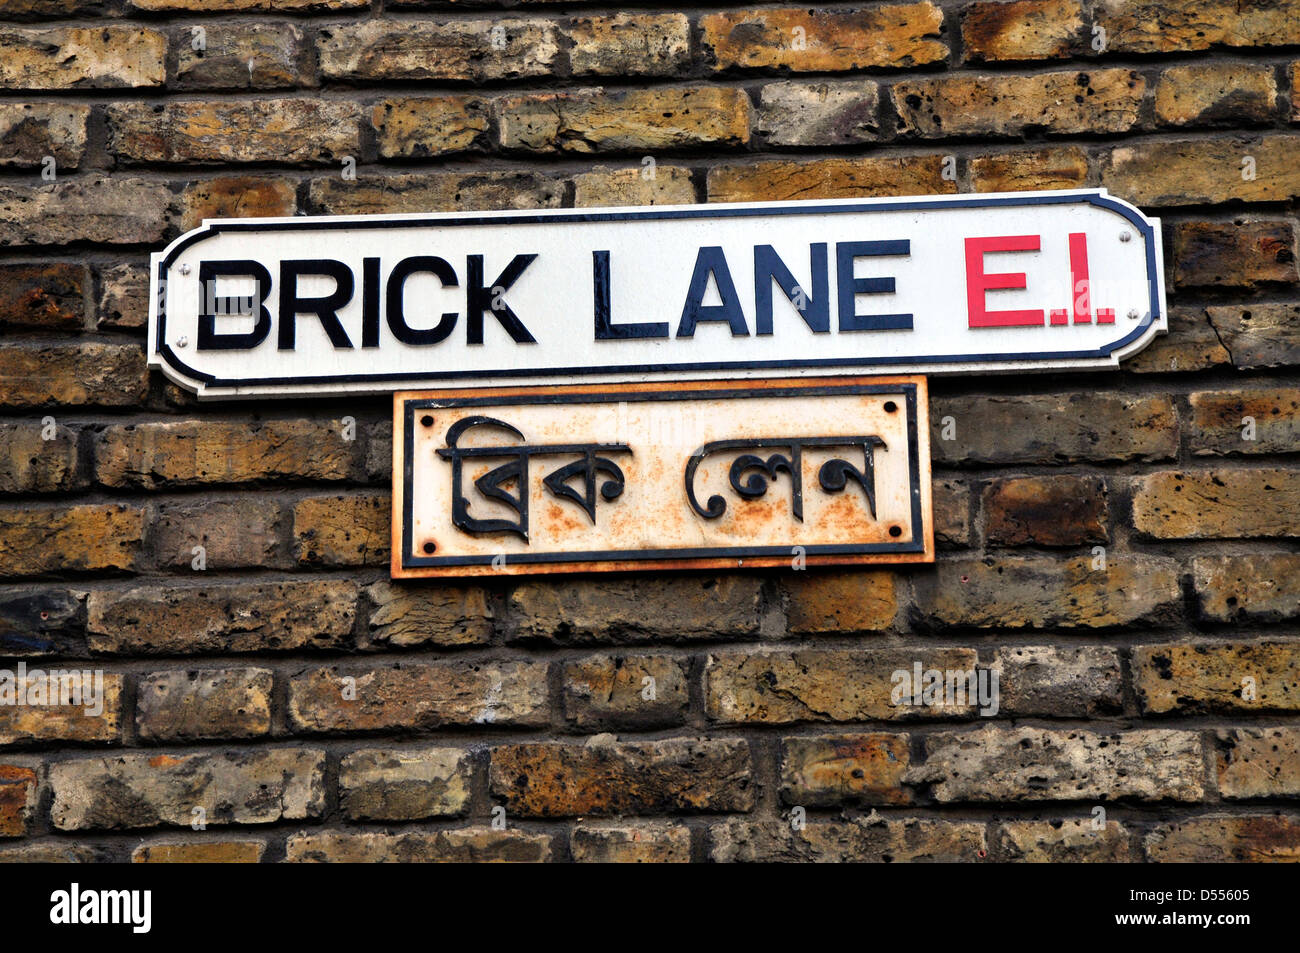 Image result for bengali road sign uk